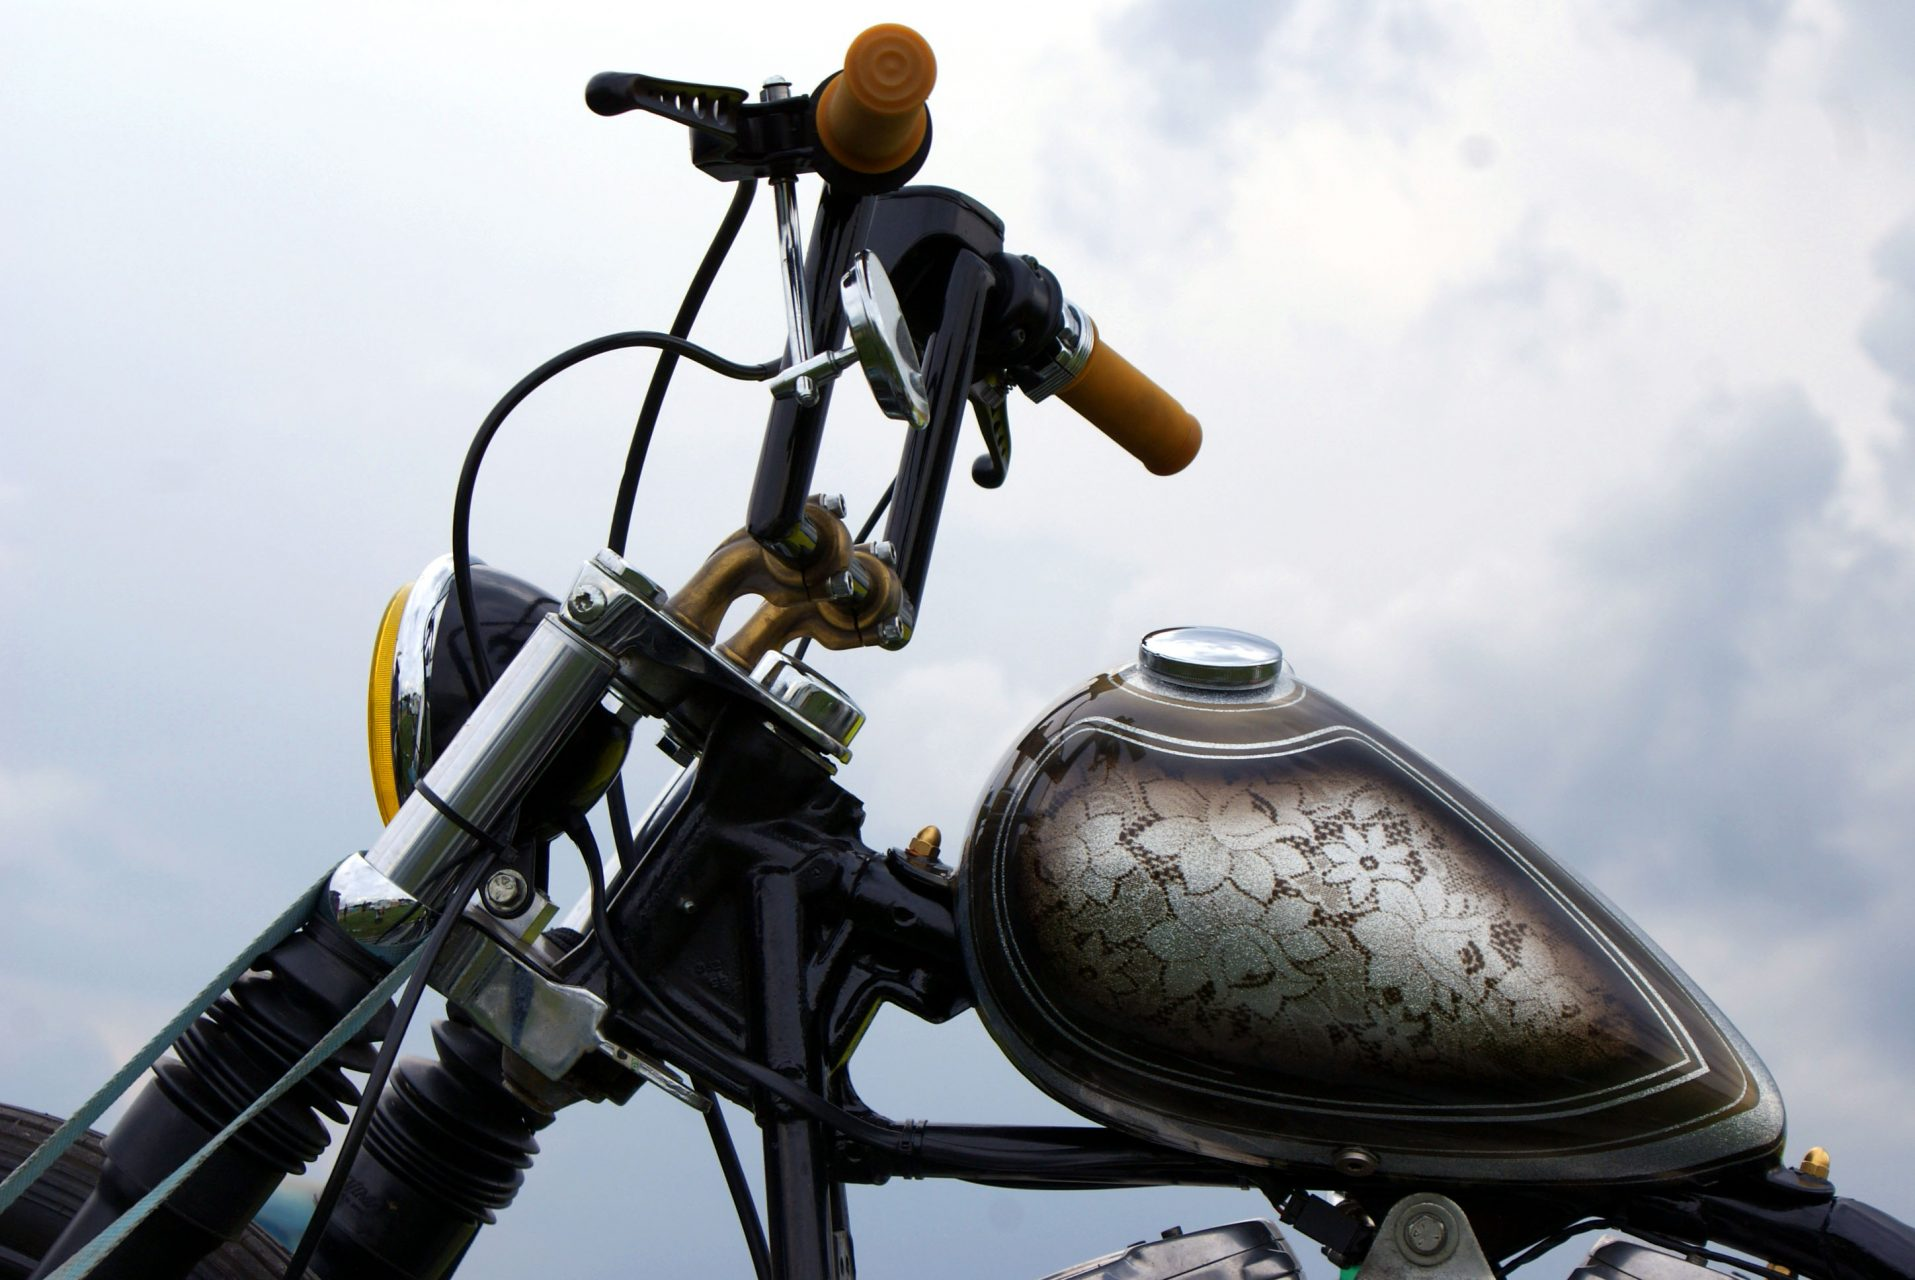 Chimay Hot Rod Custom Show